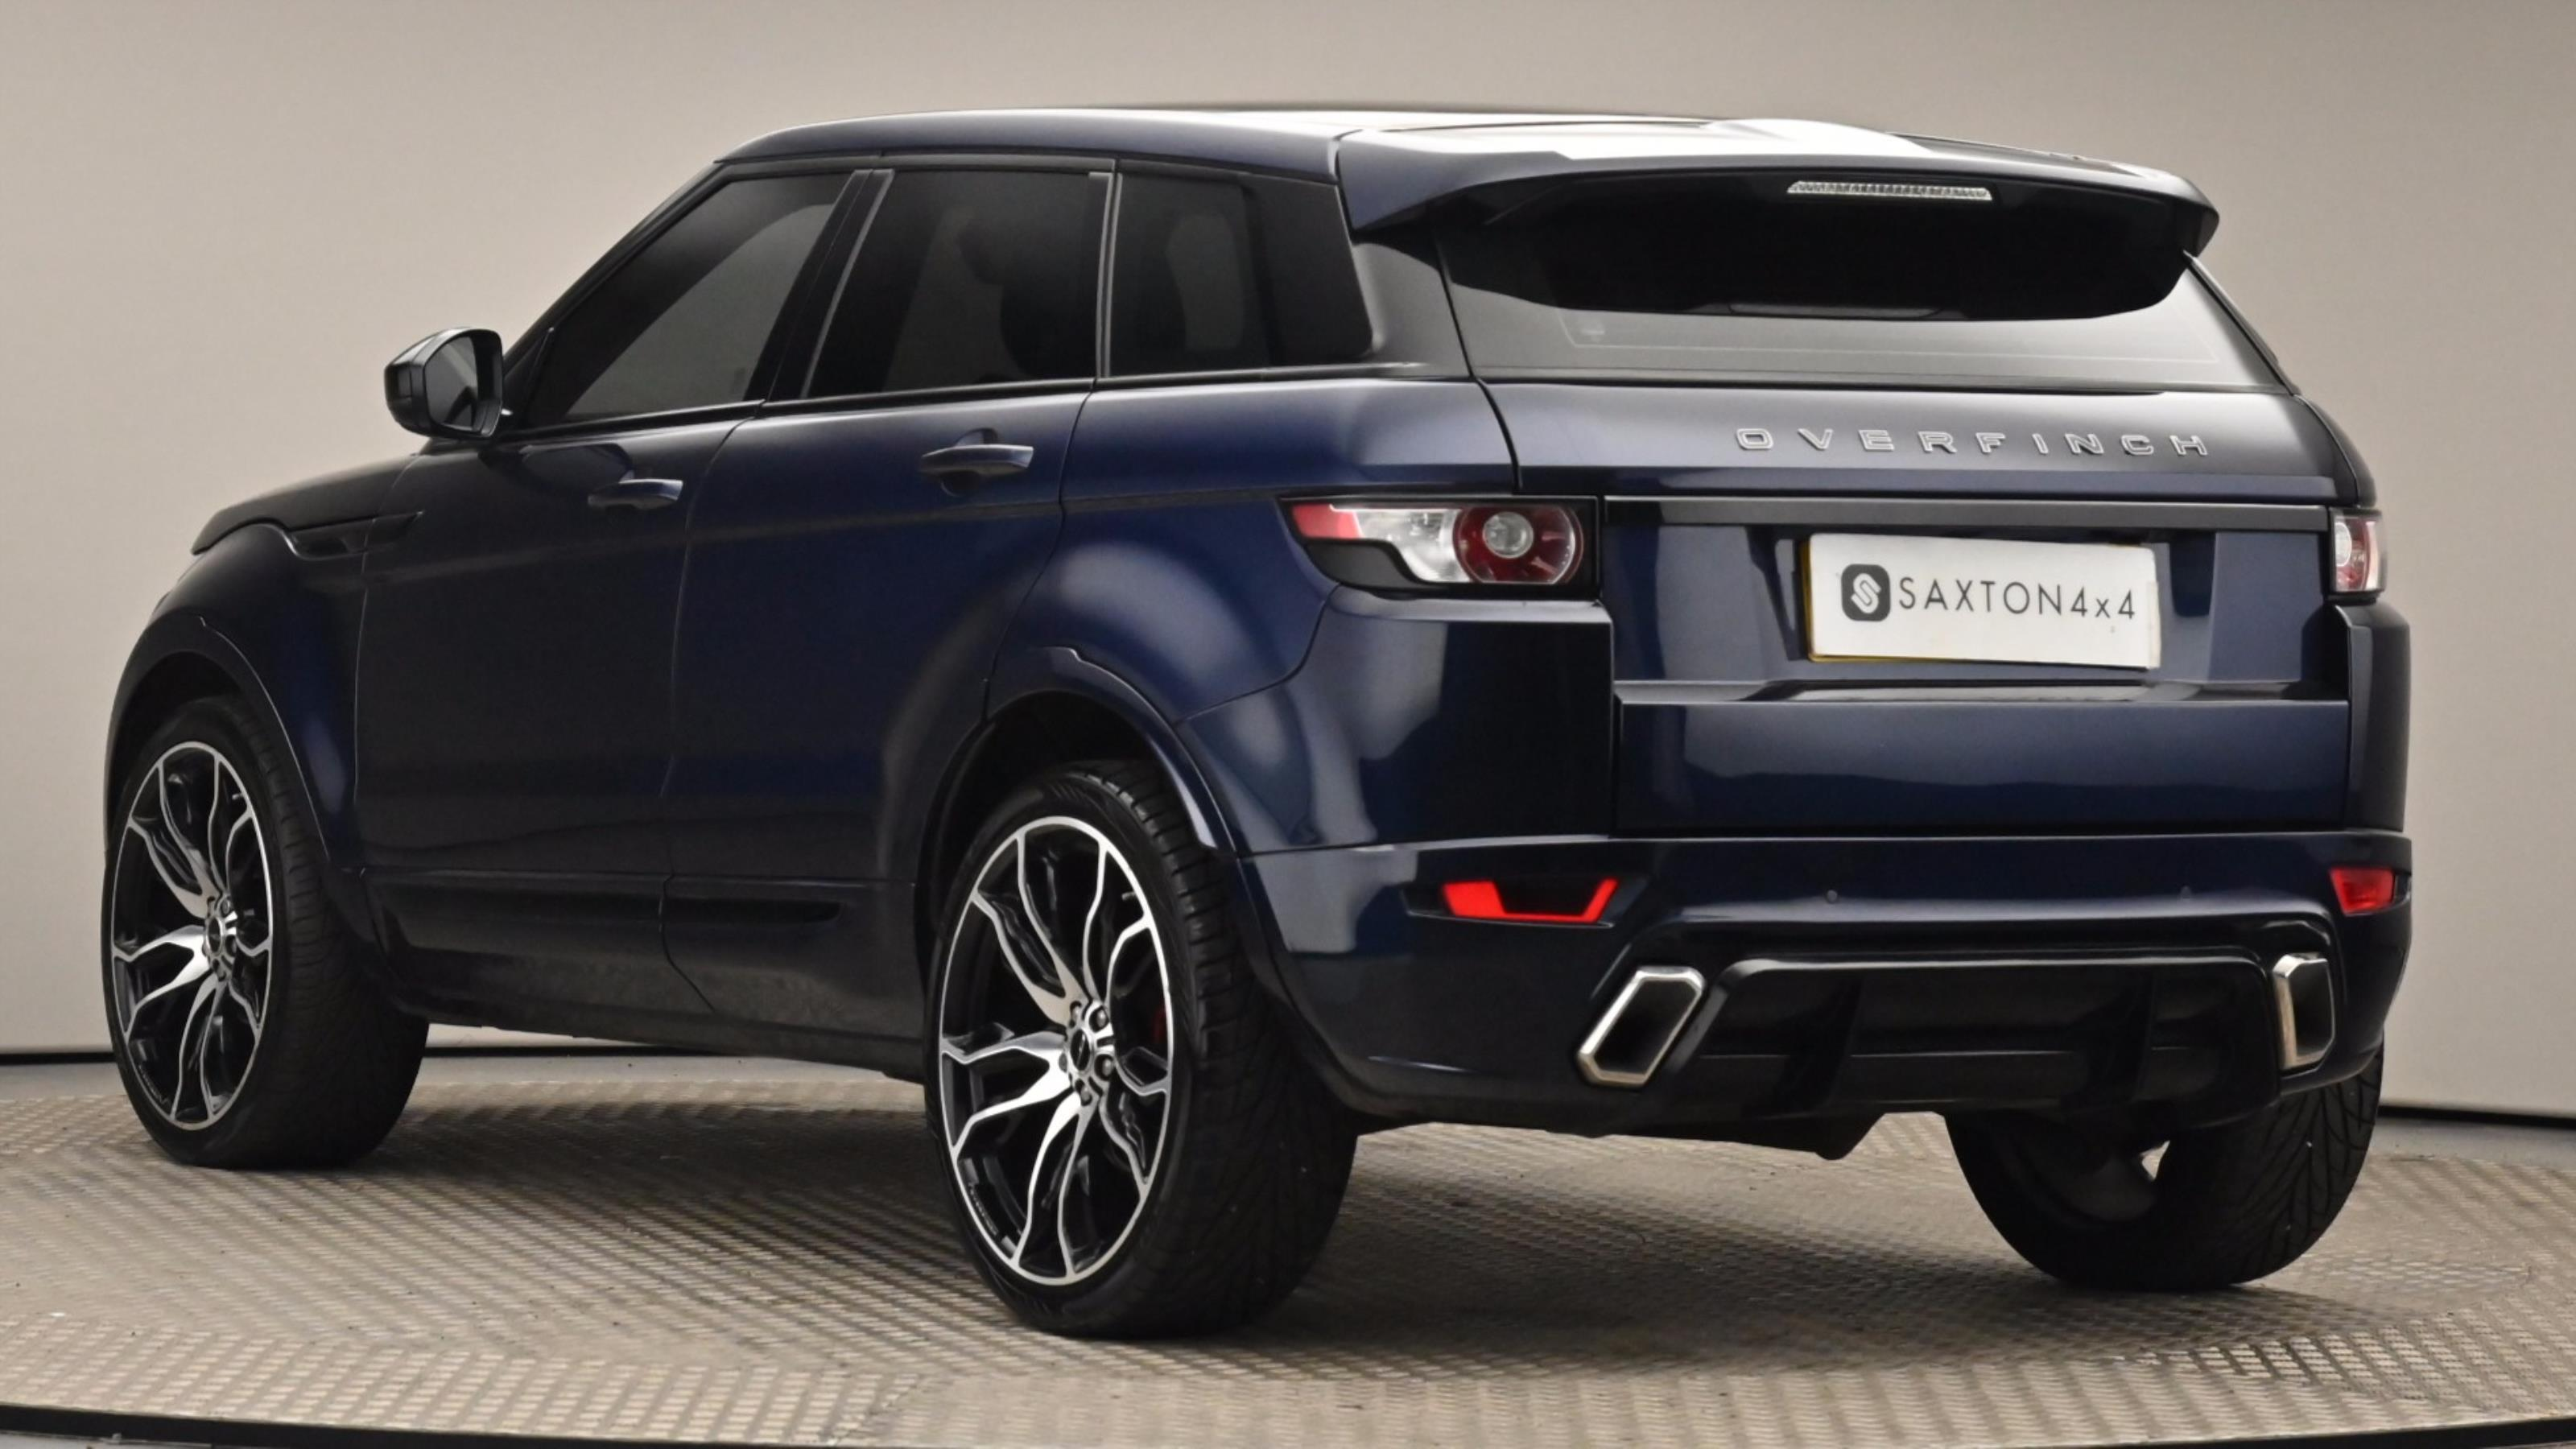 Used 15 Land Rover RANGE ROVER EVOQUE 2.2 SD4 Pure 5dr Auto [9] [Tech Pack] BLUE at Saxton4x4